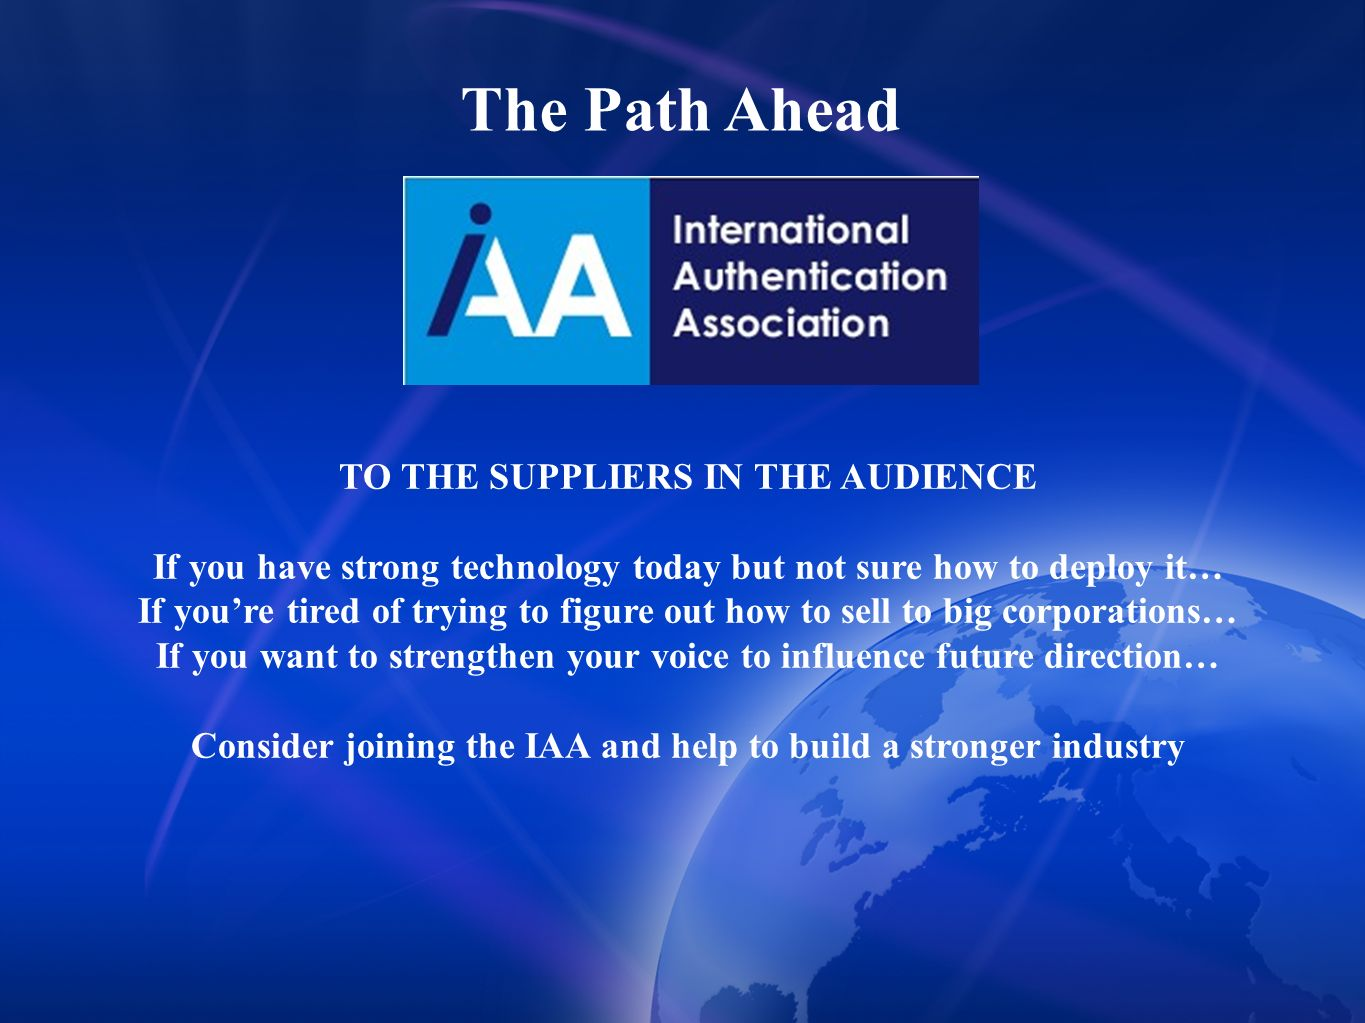 The Path Ahead TO THE SUPPLIERS IN THE AUDIENCE If you have strong technology today but not sure how to deploy it… If youre tired of trying to figure out how to sell to big corporations… If you want to strengthen your voice to influence future direction… Consider joining the IAA and help to build a stronger industry